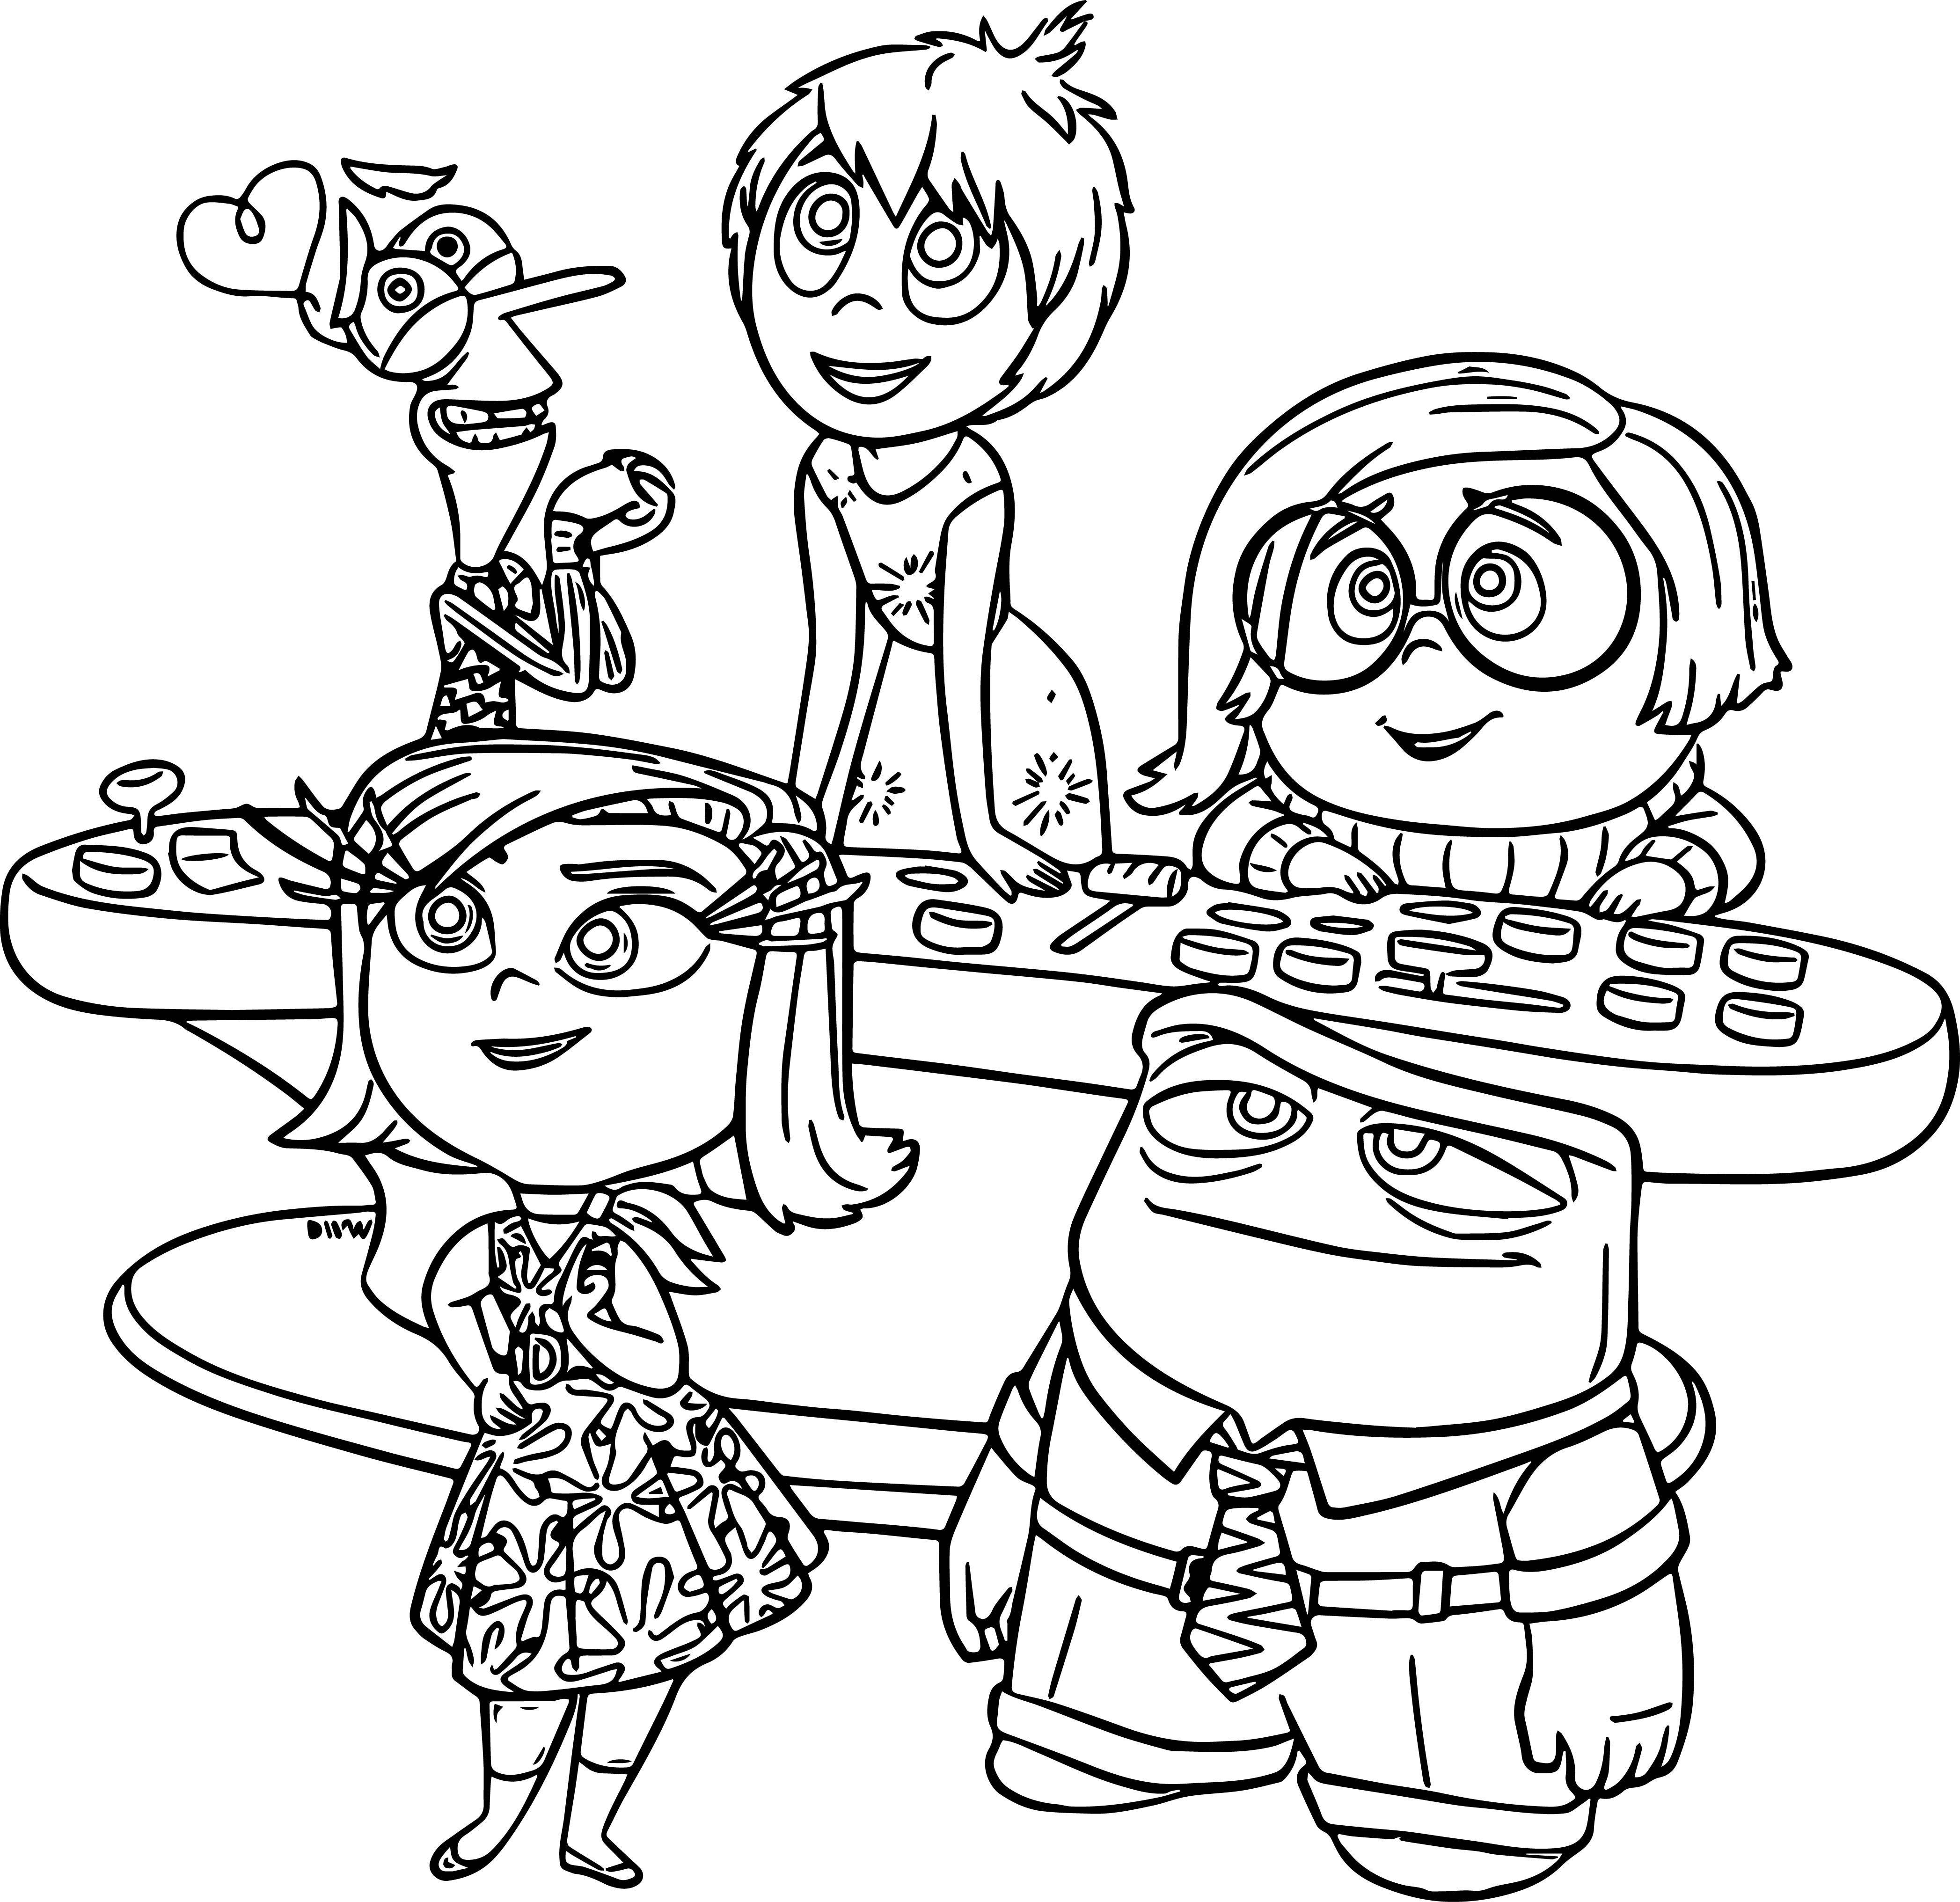 The Best Free Fear Coloring Page Images Download From 50 Free